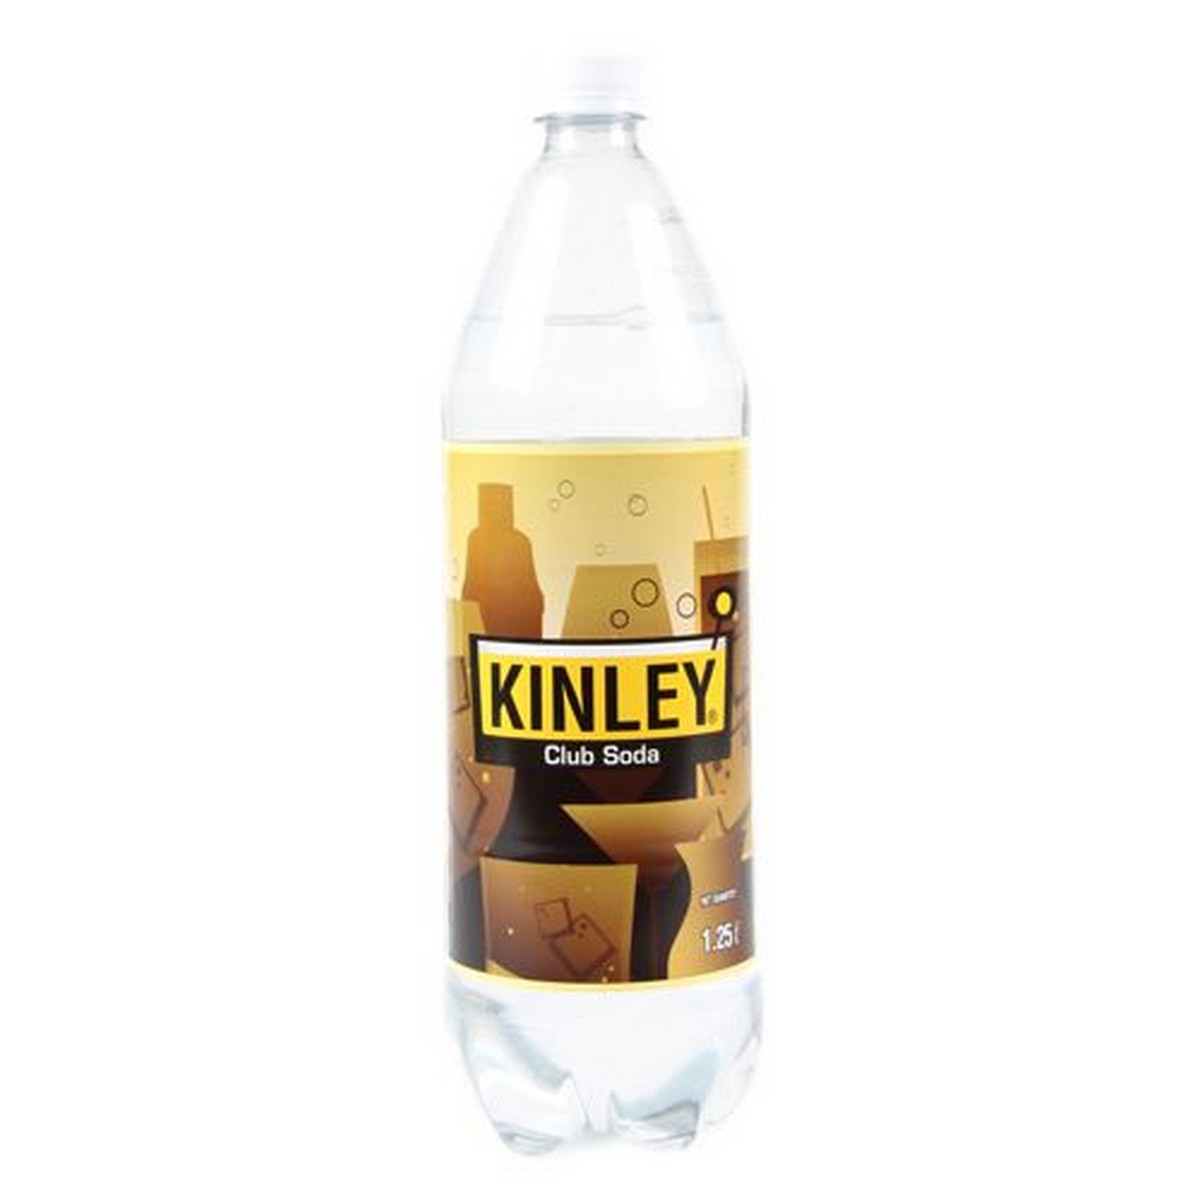 Kinley Club Soda